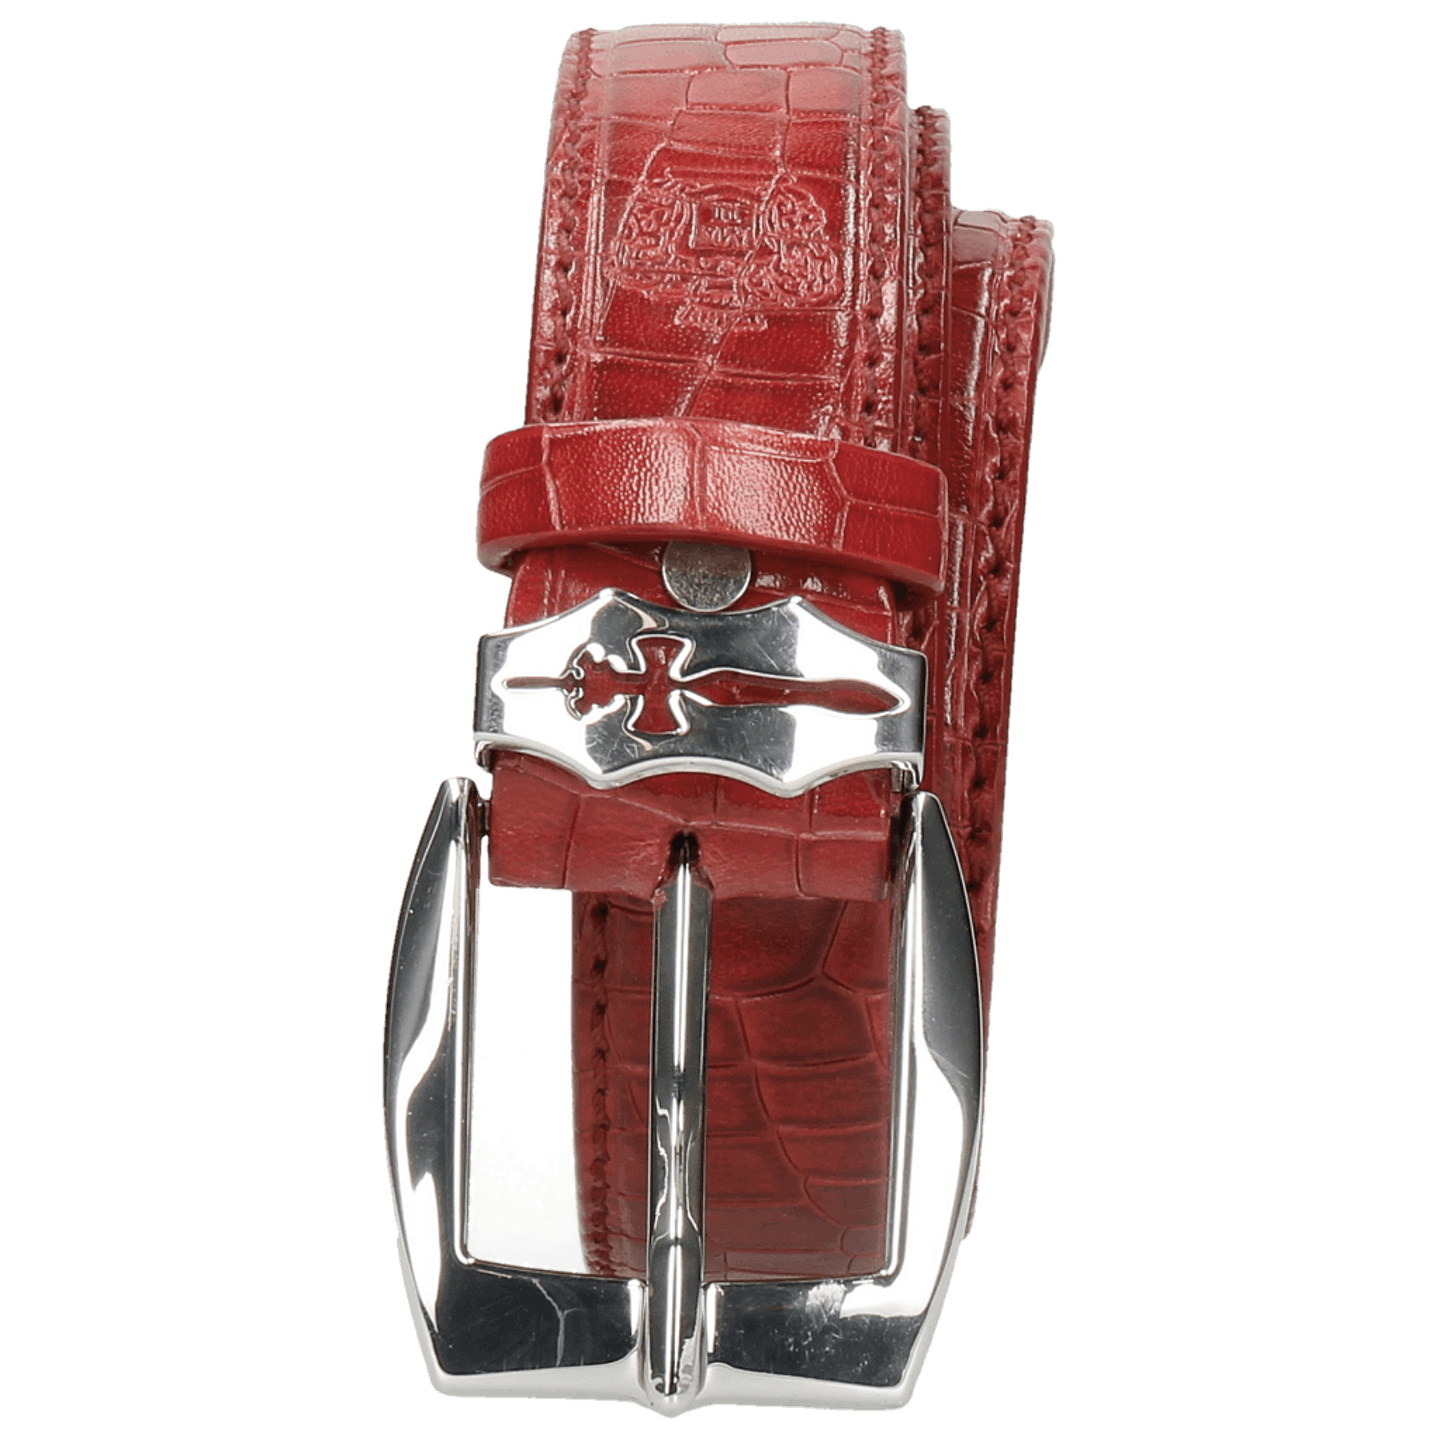 Larry 1 Crock Ruby Sword Buckle